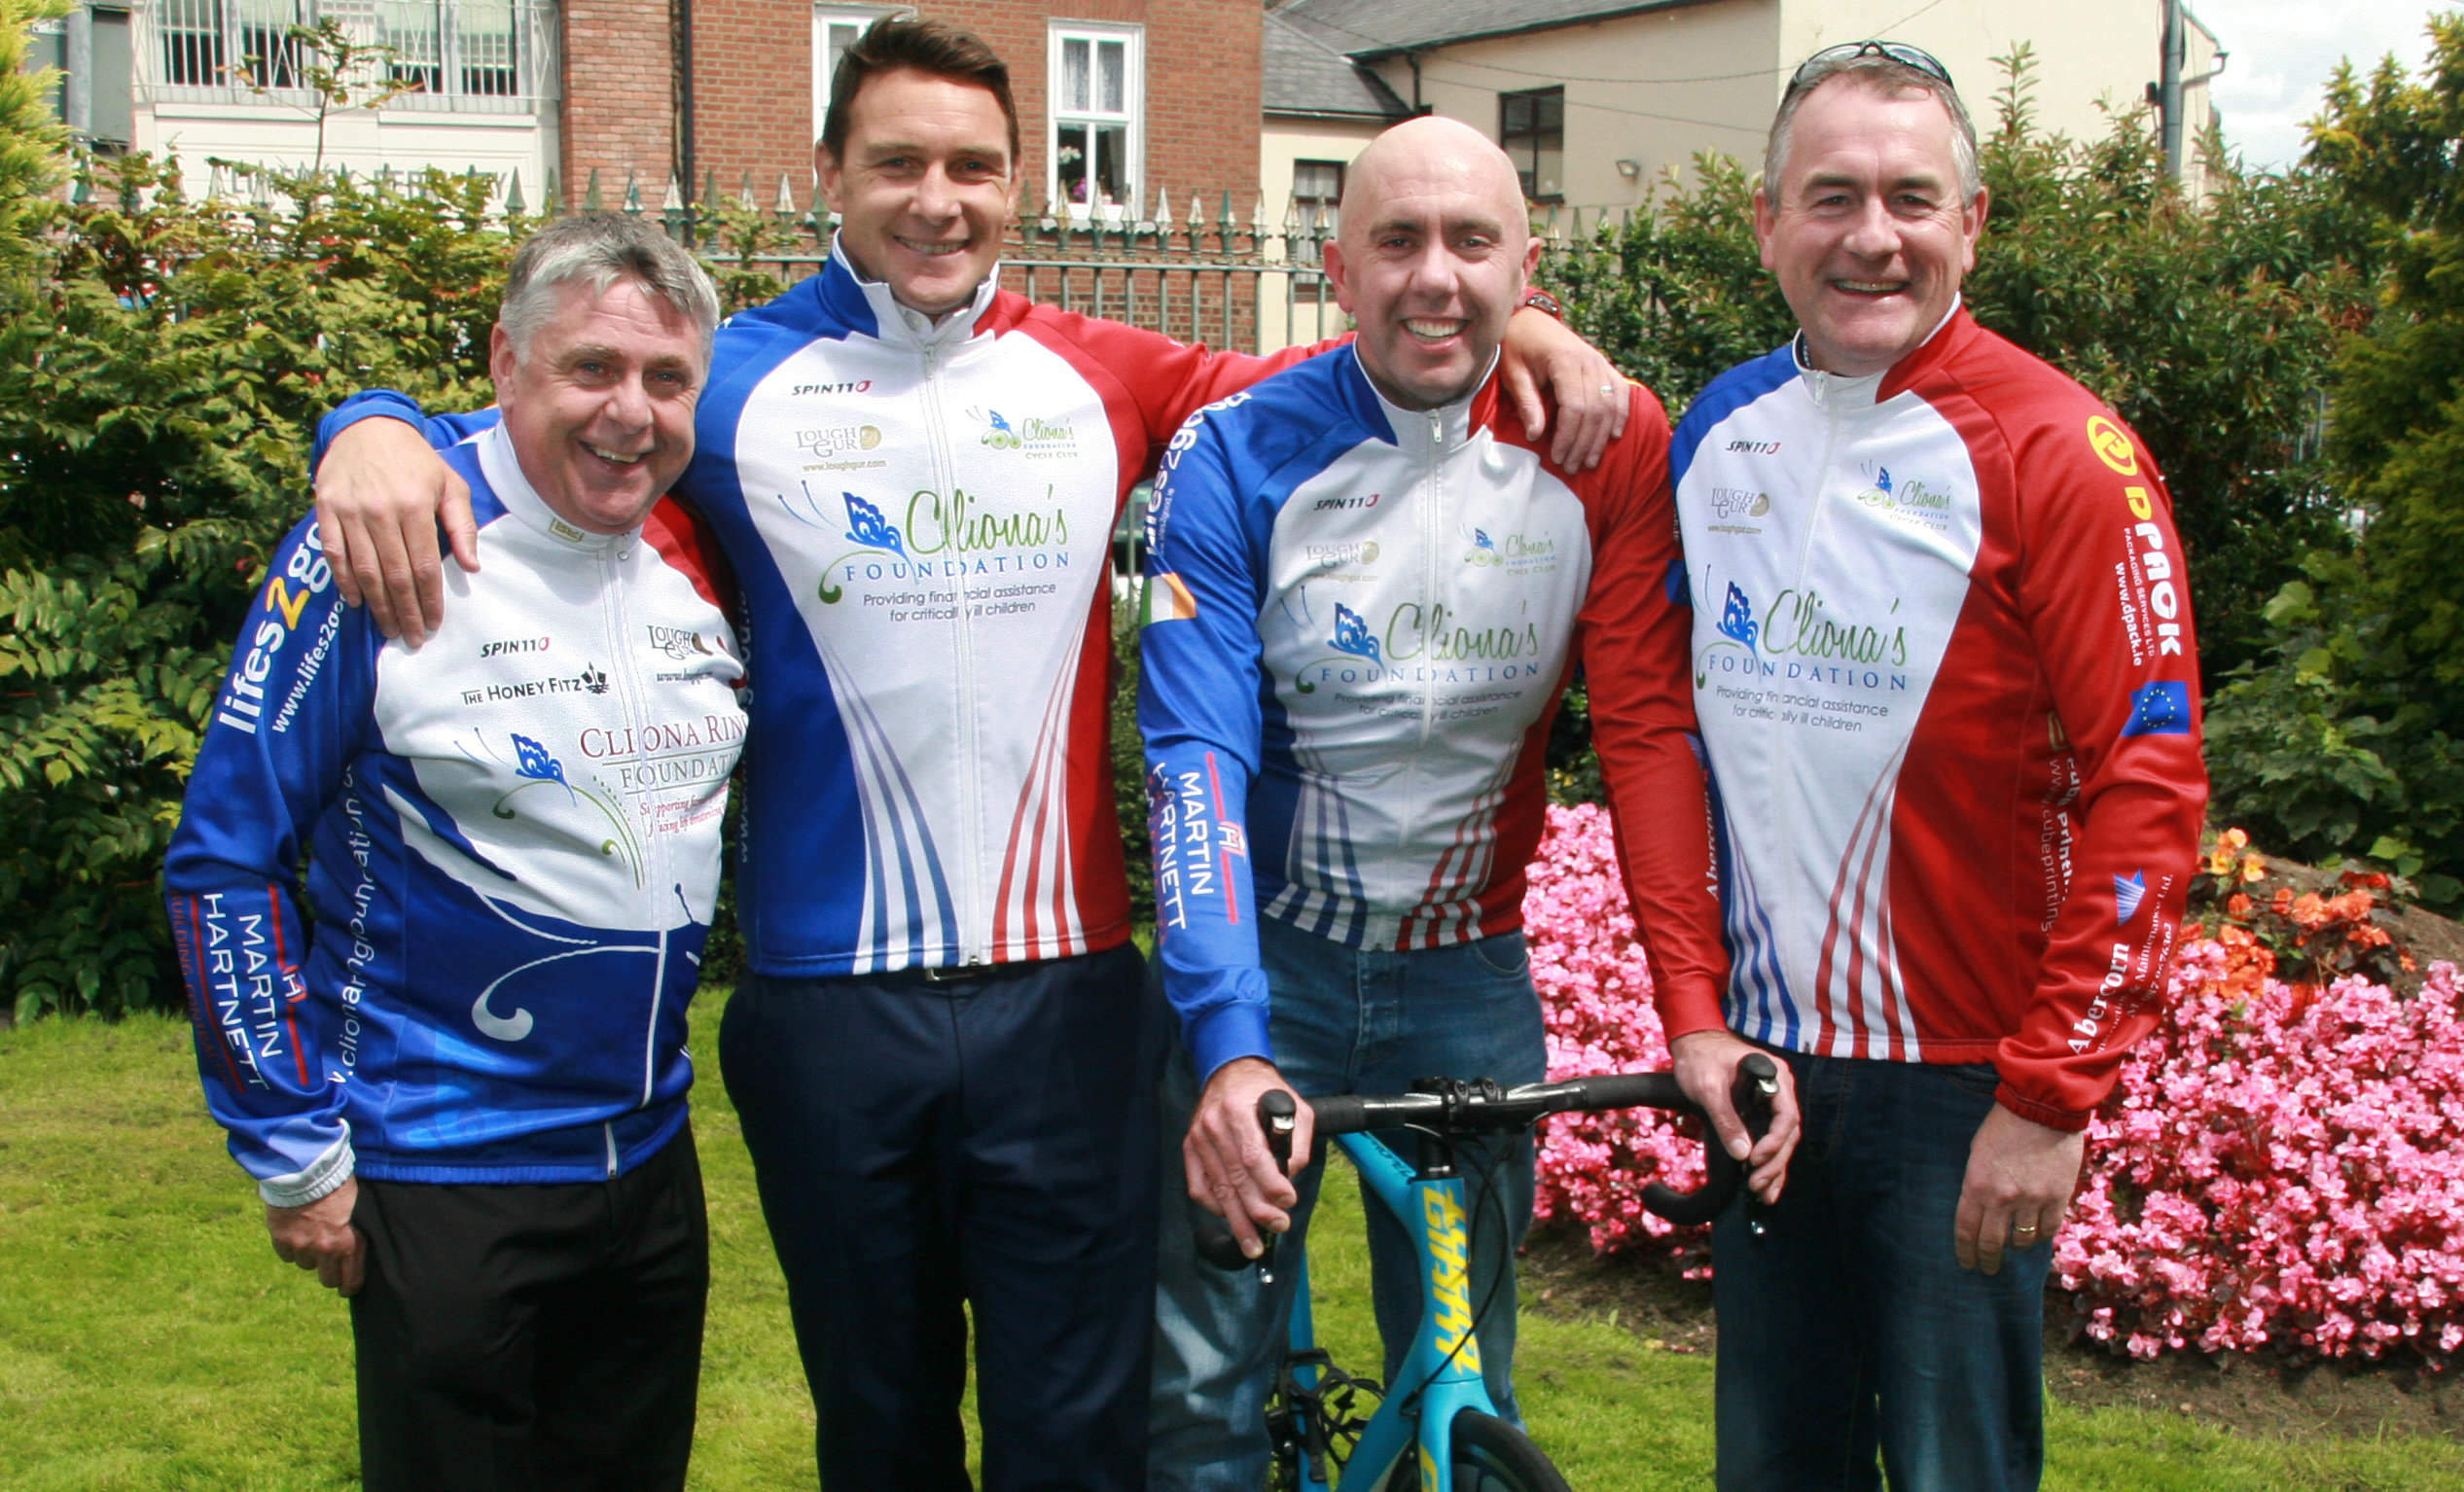 Cliona's Foundation's 10th Annual Cycle